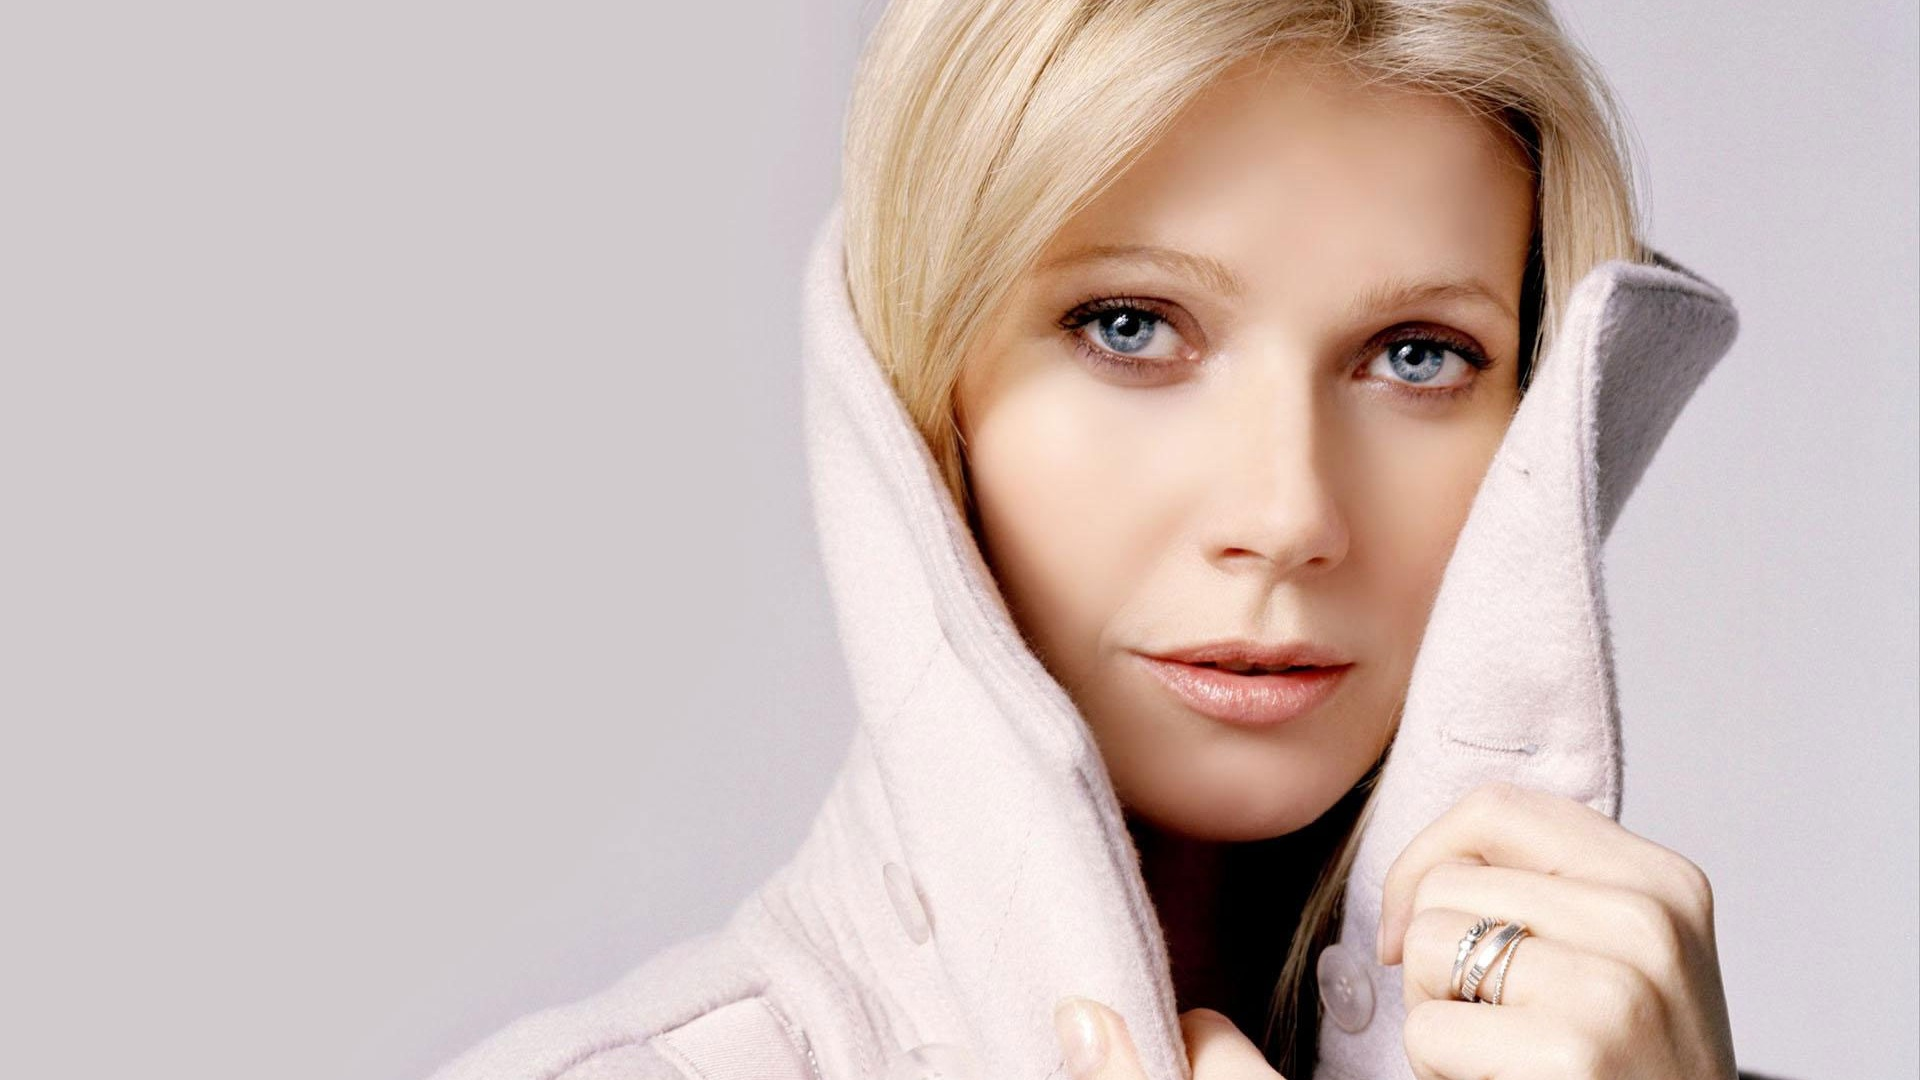 Gwyneth Paltrow Wallpapers Download 94CIA8H WallpapersExpertcom 1920x1080